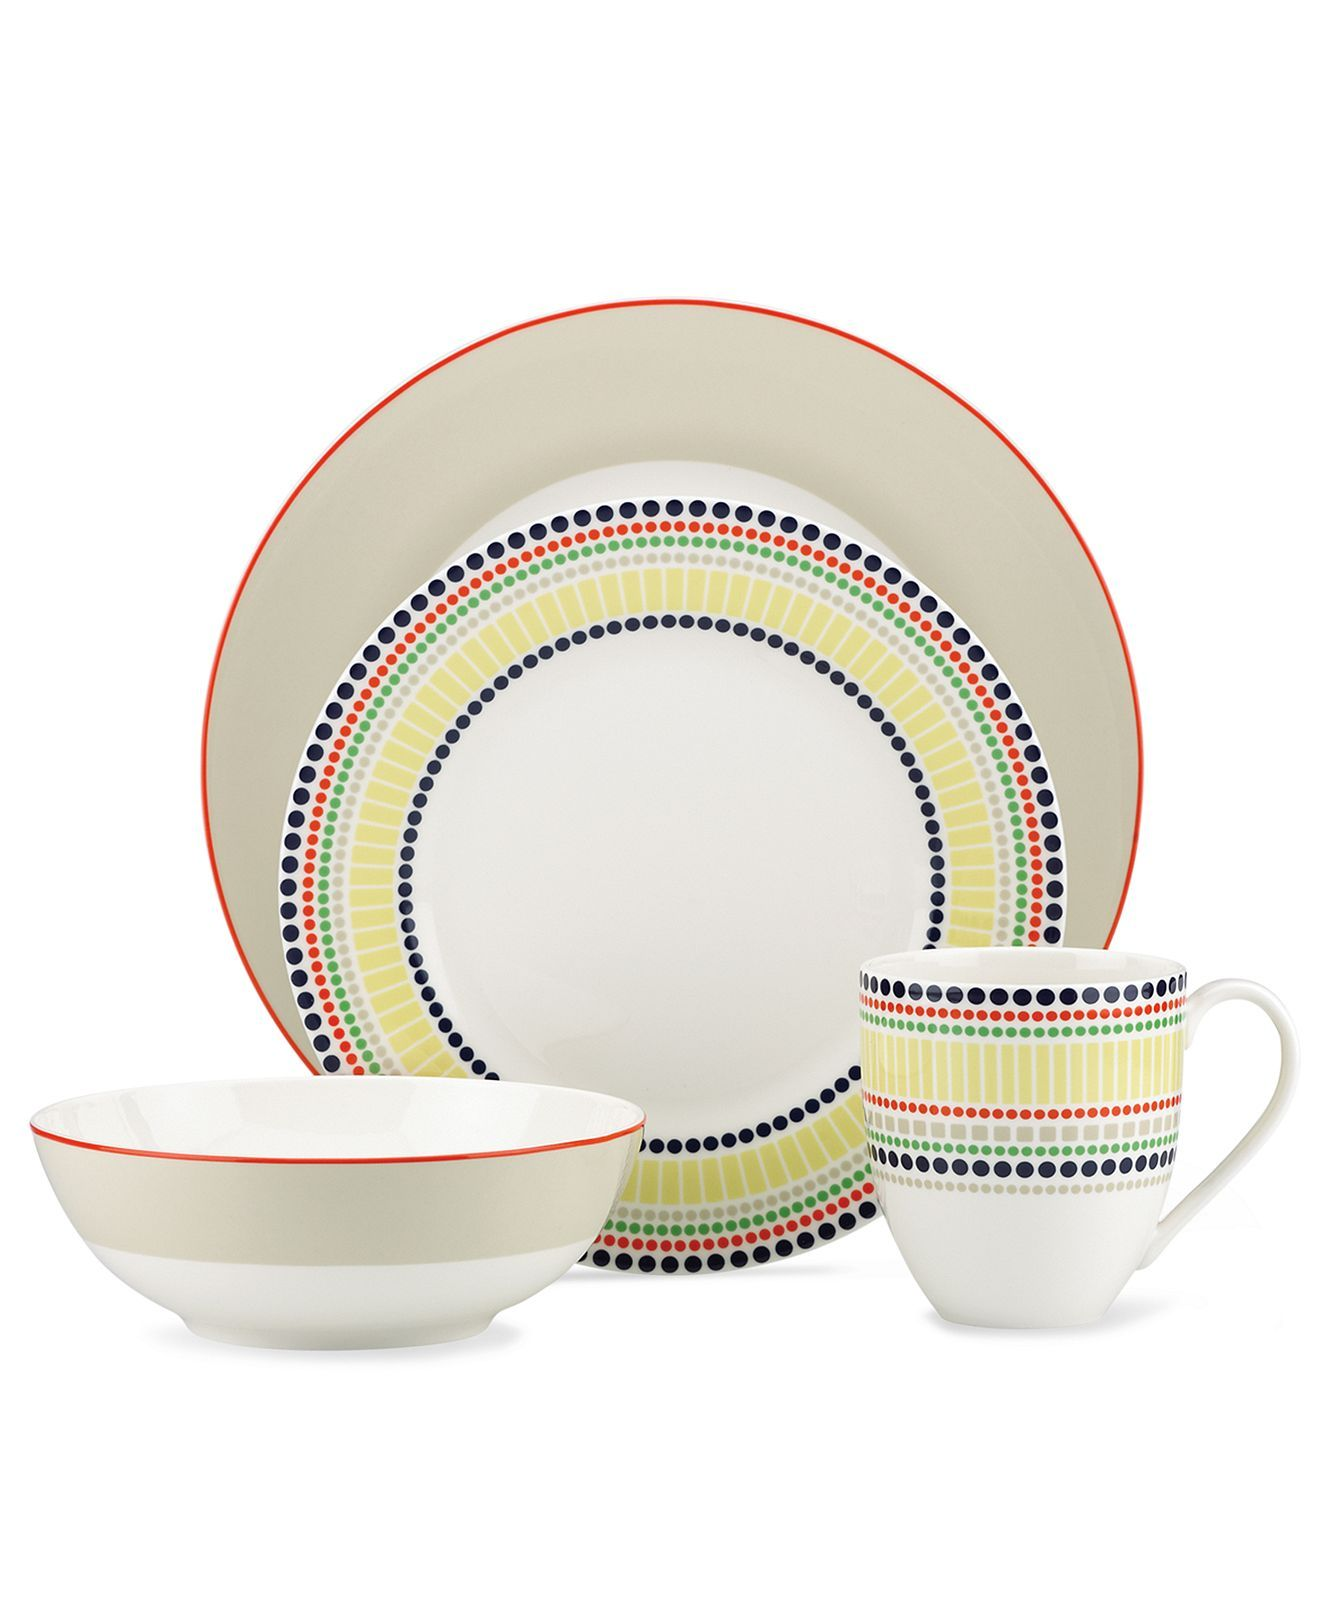 kate spade new york Dinnerware Hopscotch Drive Collection - Casual Dinnerware - Dining u0026 Entertaining  sc 1 st  Pinterest & kate spade new york Dinnerware Hopscotch Drive Navy Collection ...